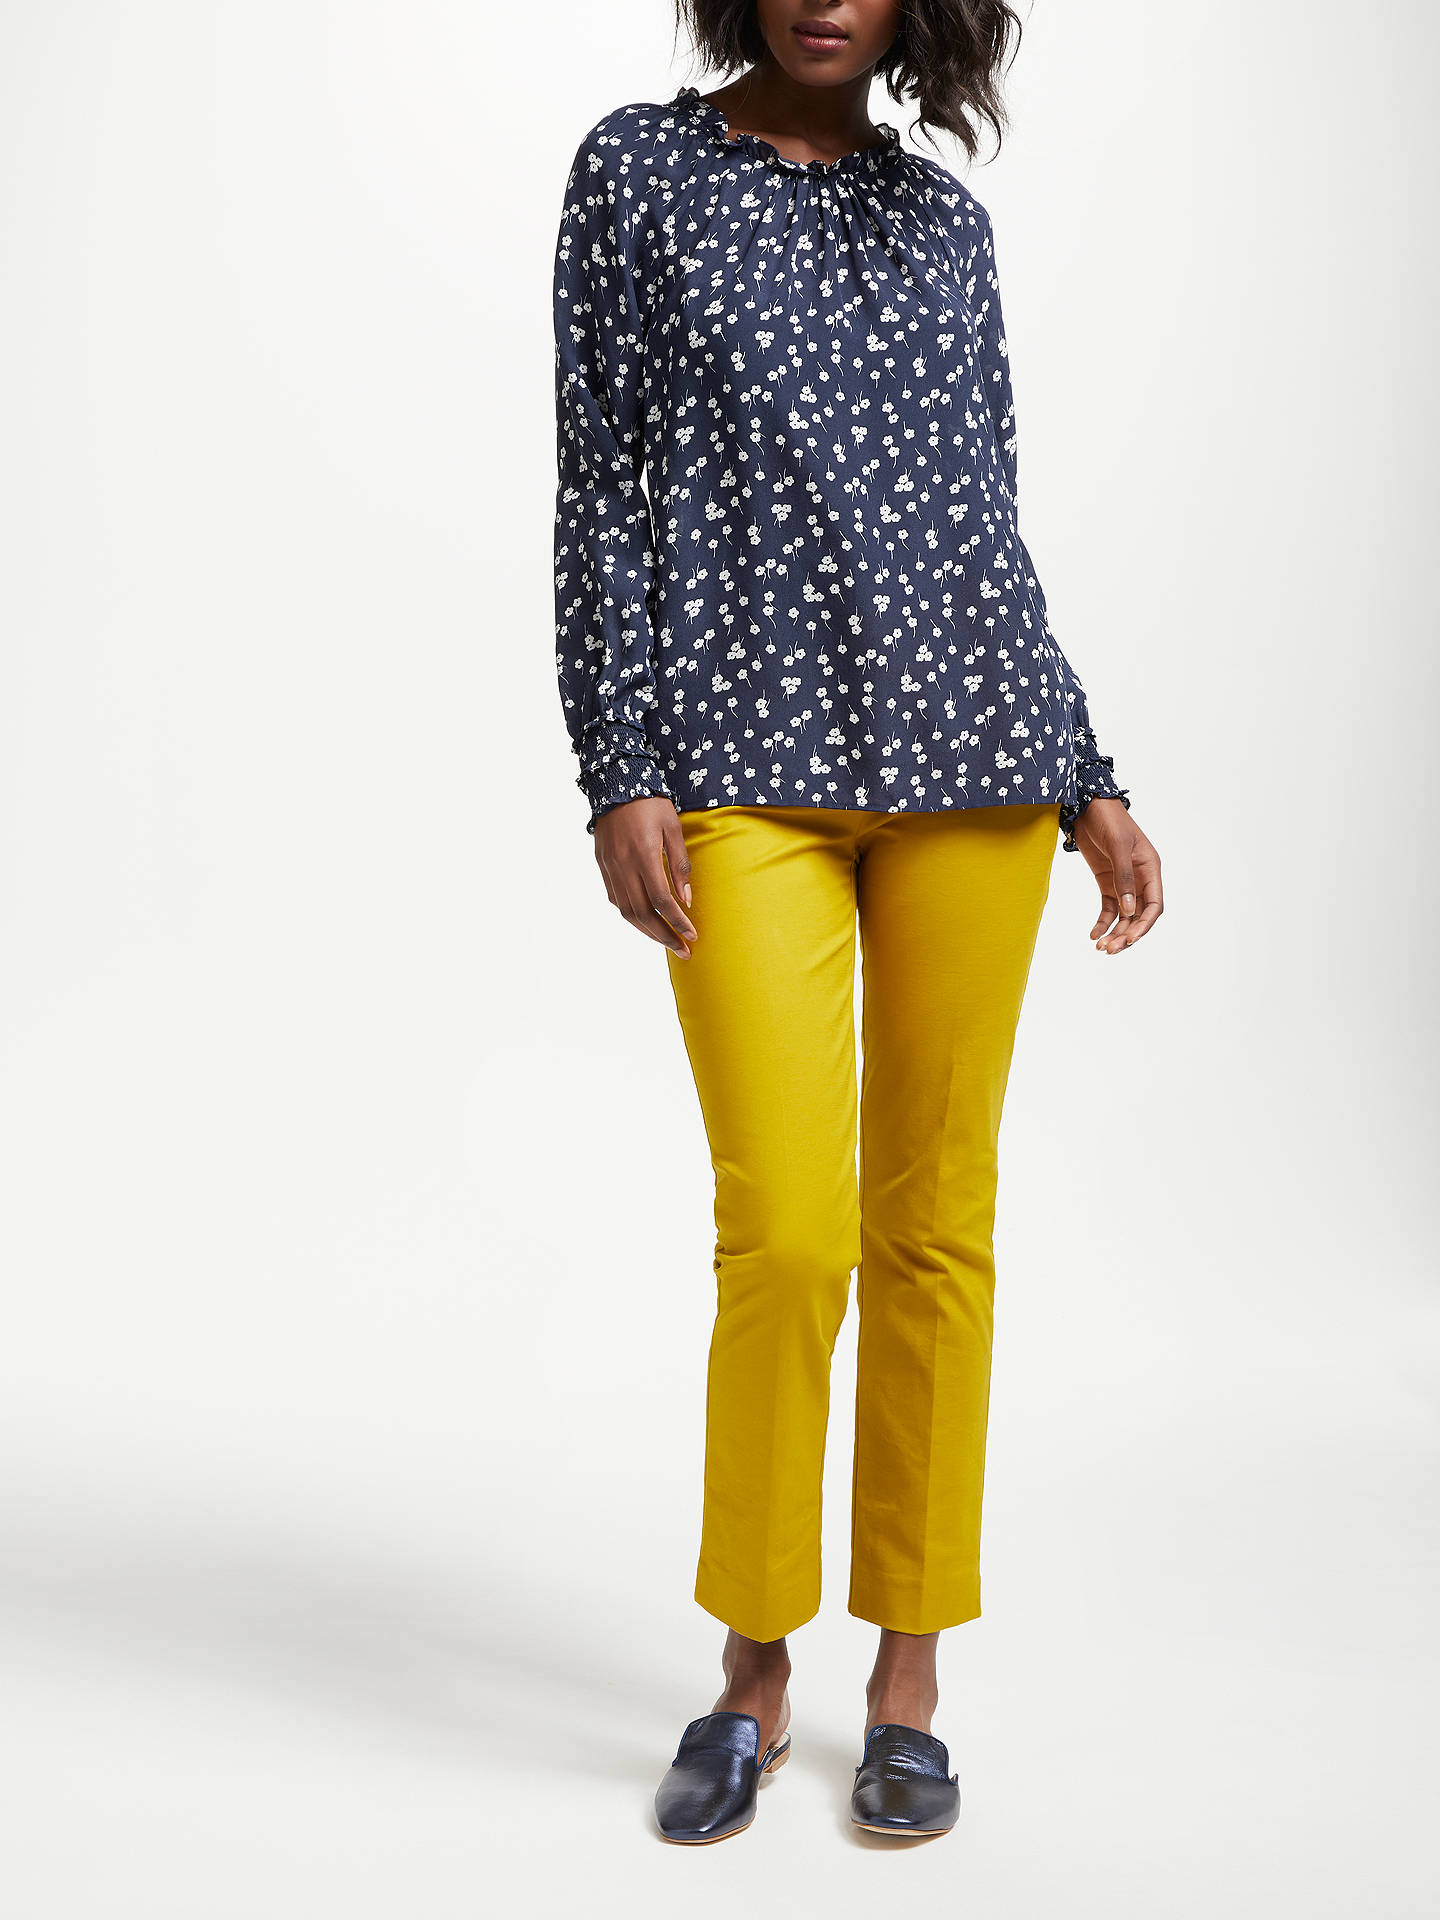 91ed426348232 ... Buy Boden Sadie Silk Top